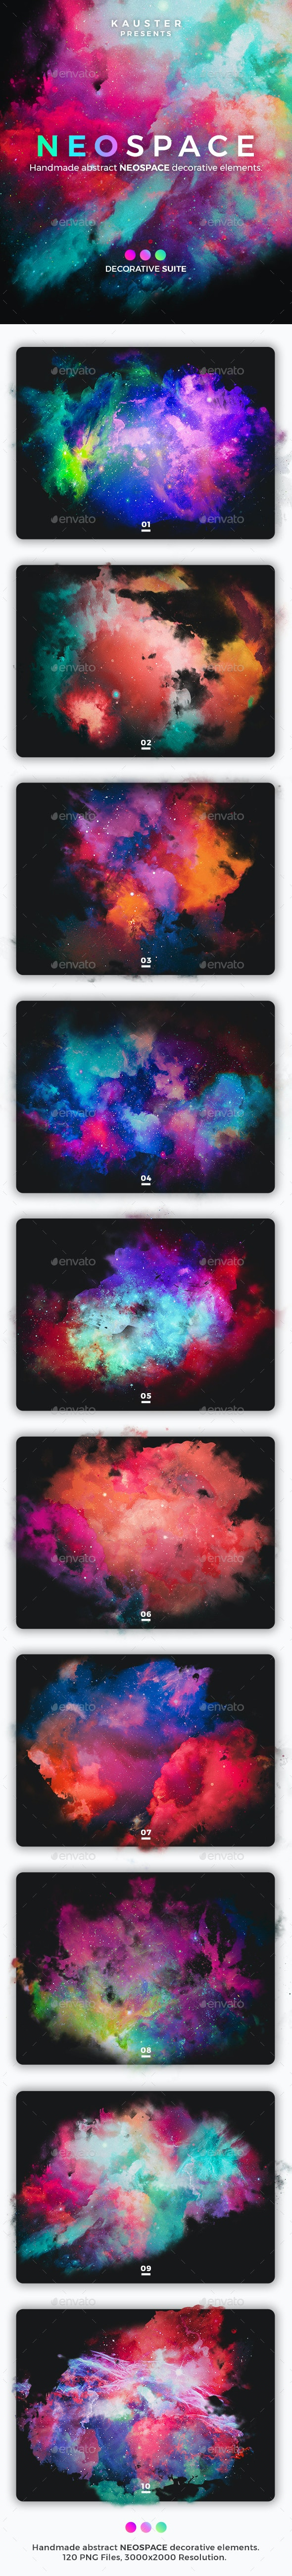 Neospace Decorative Suite - Abstract Backgrounds